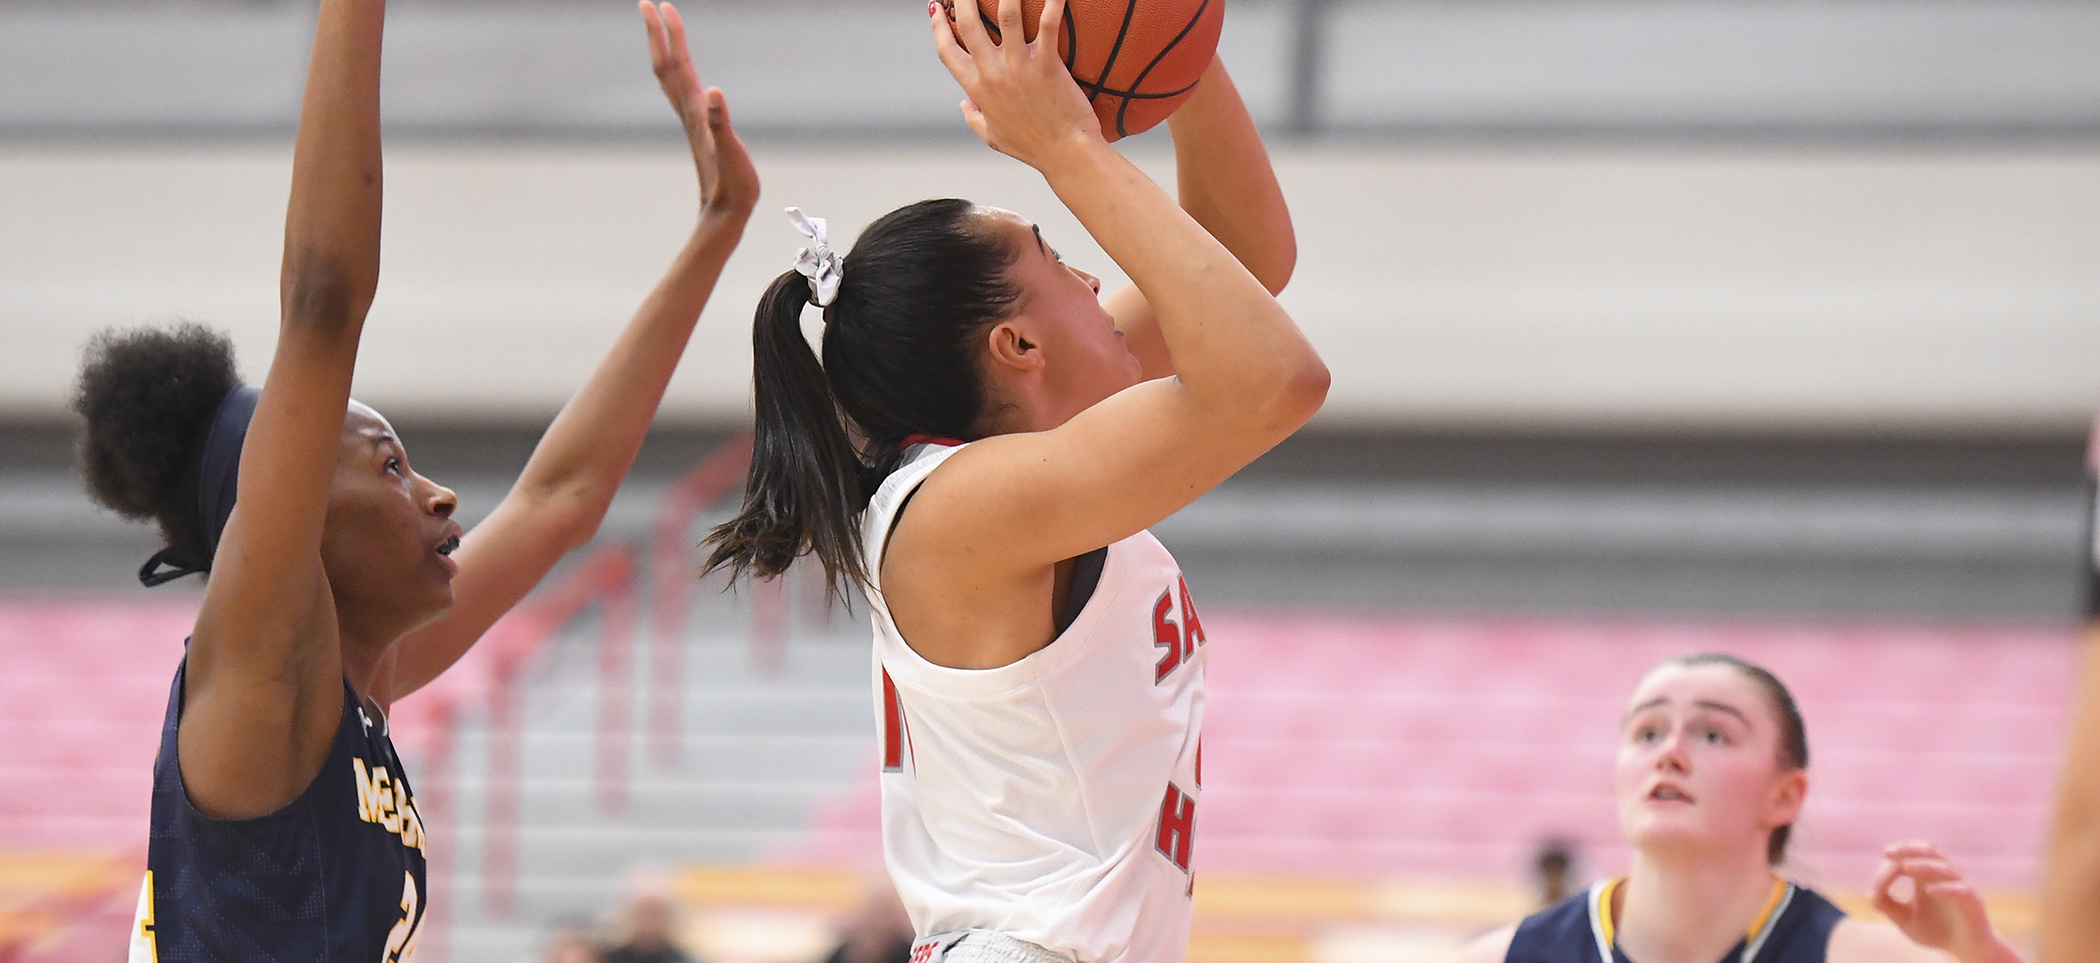 Women's Basketball Comes-From-Behind to Defeat Merrimack, 63-60, in NEC Opener